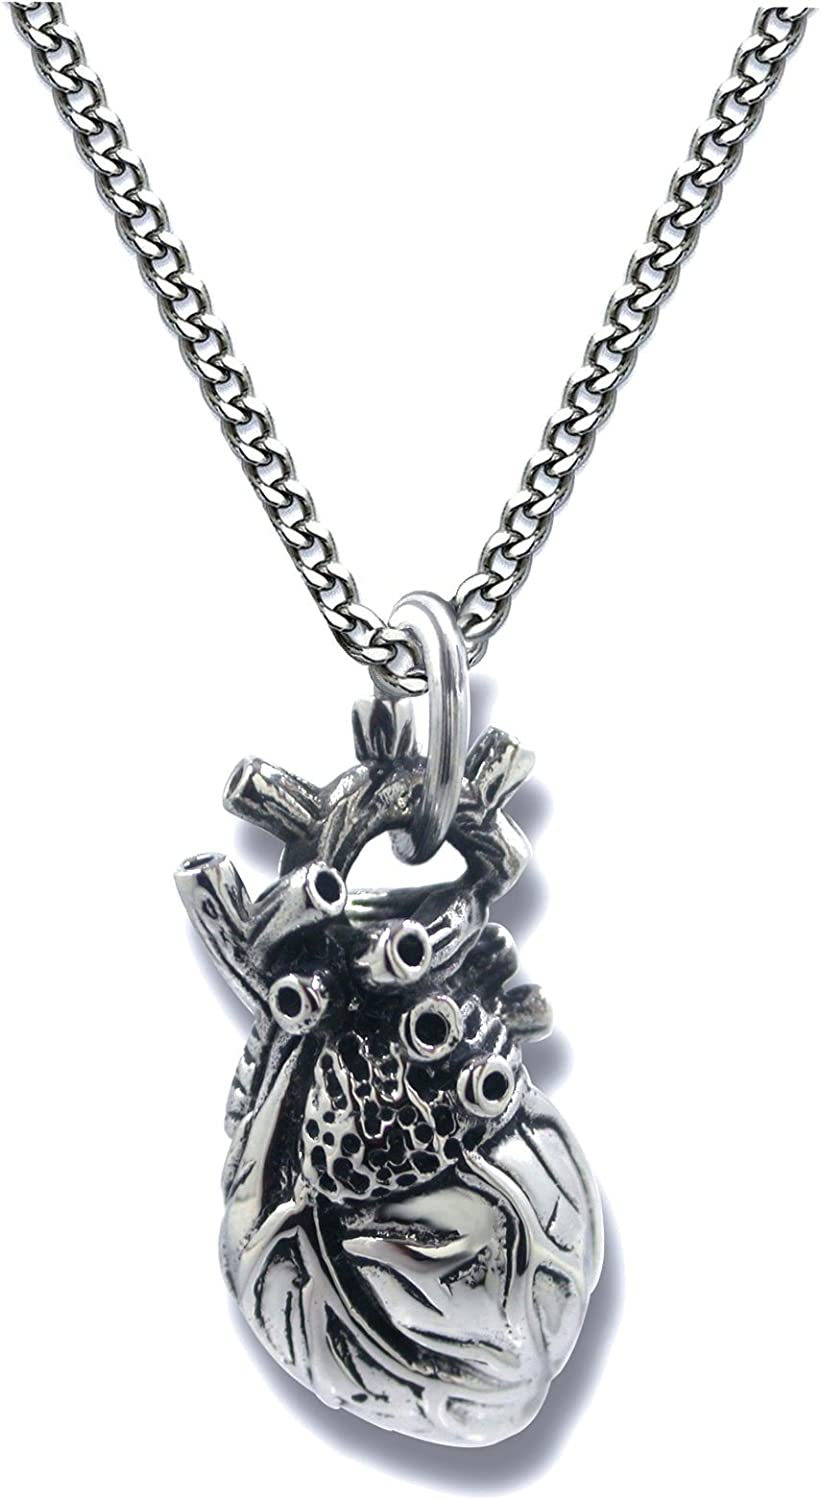 Pearlina Anatomical Heart Necklace Man or Woman 3D Pendant Oxidized Antique-Finish Stainless Steel, 24""